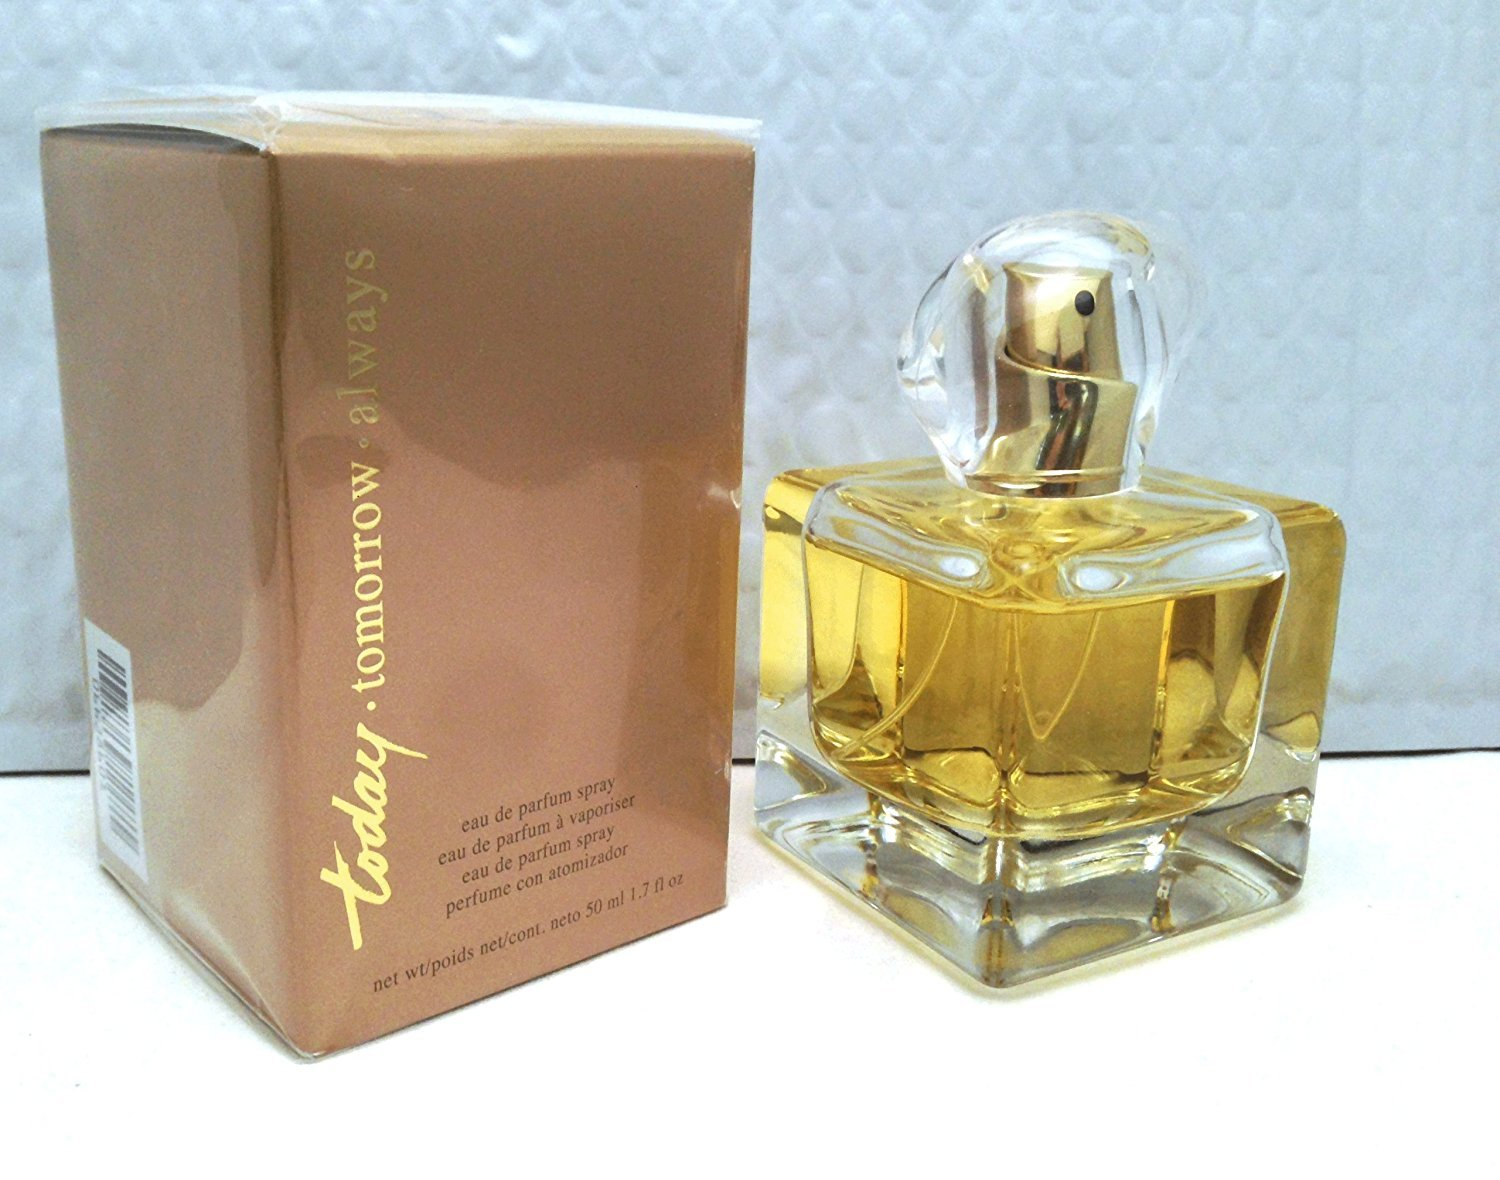 Amazoncom Today For Her Eau De Parfum Spray Today Tomorrow